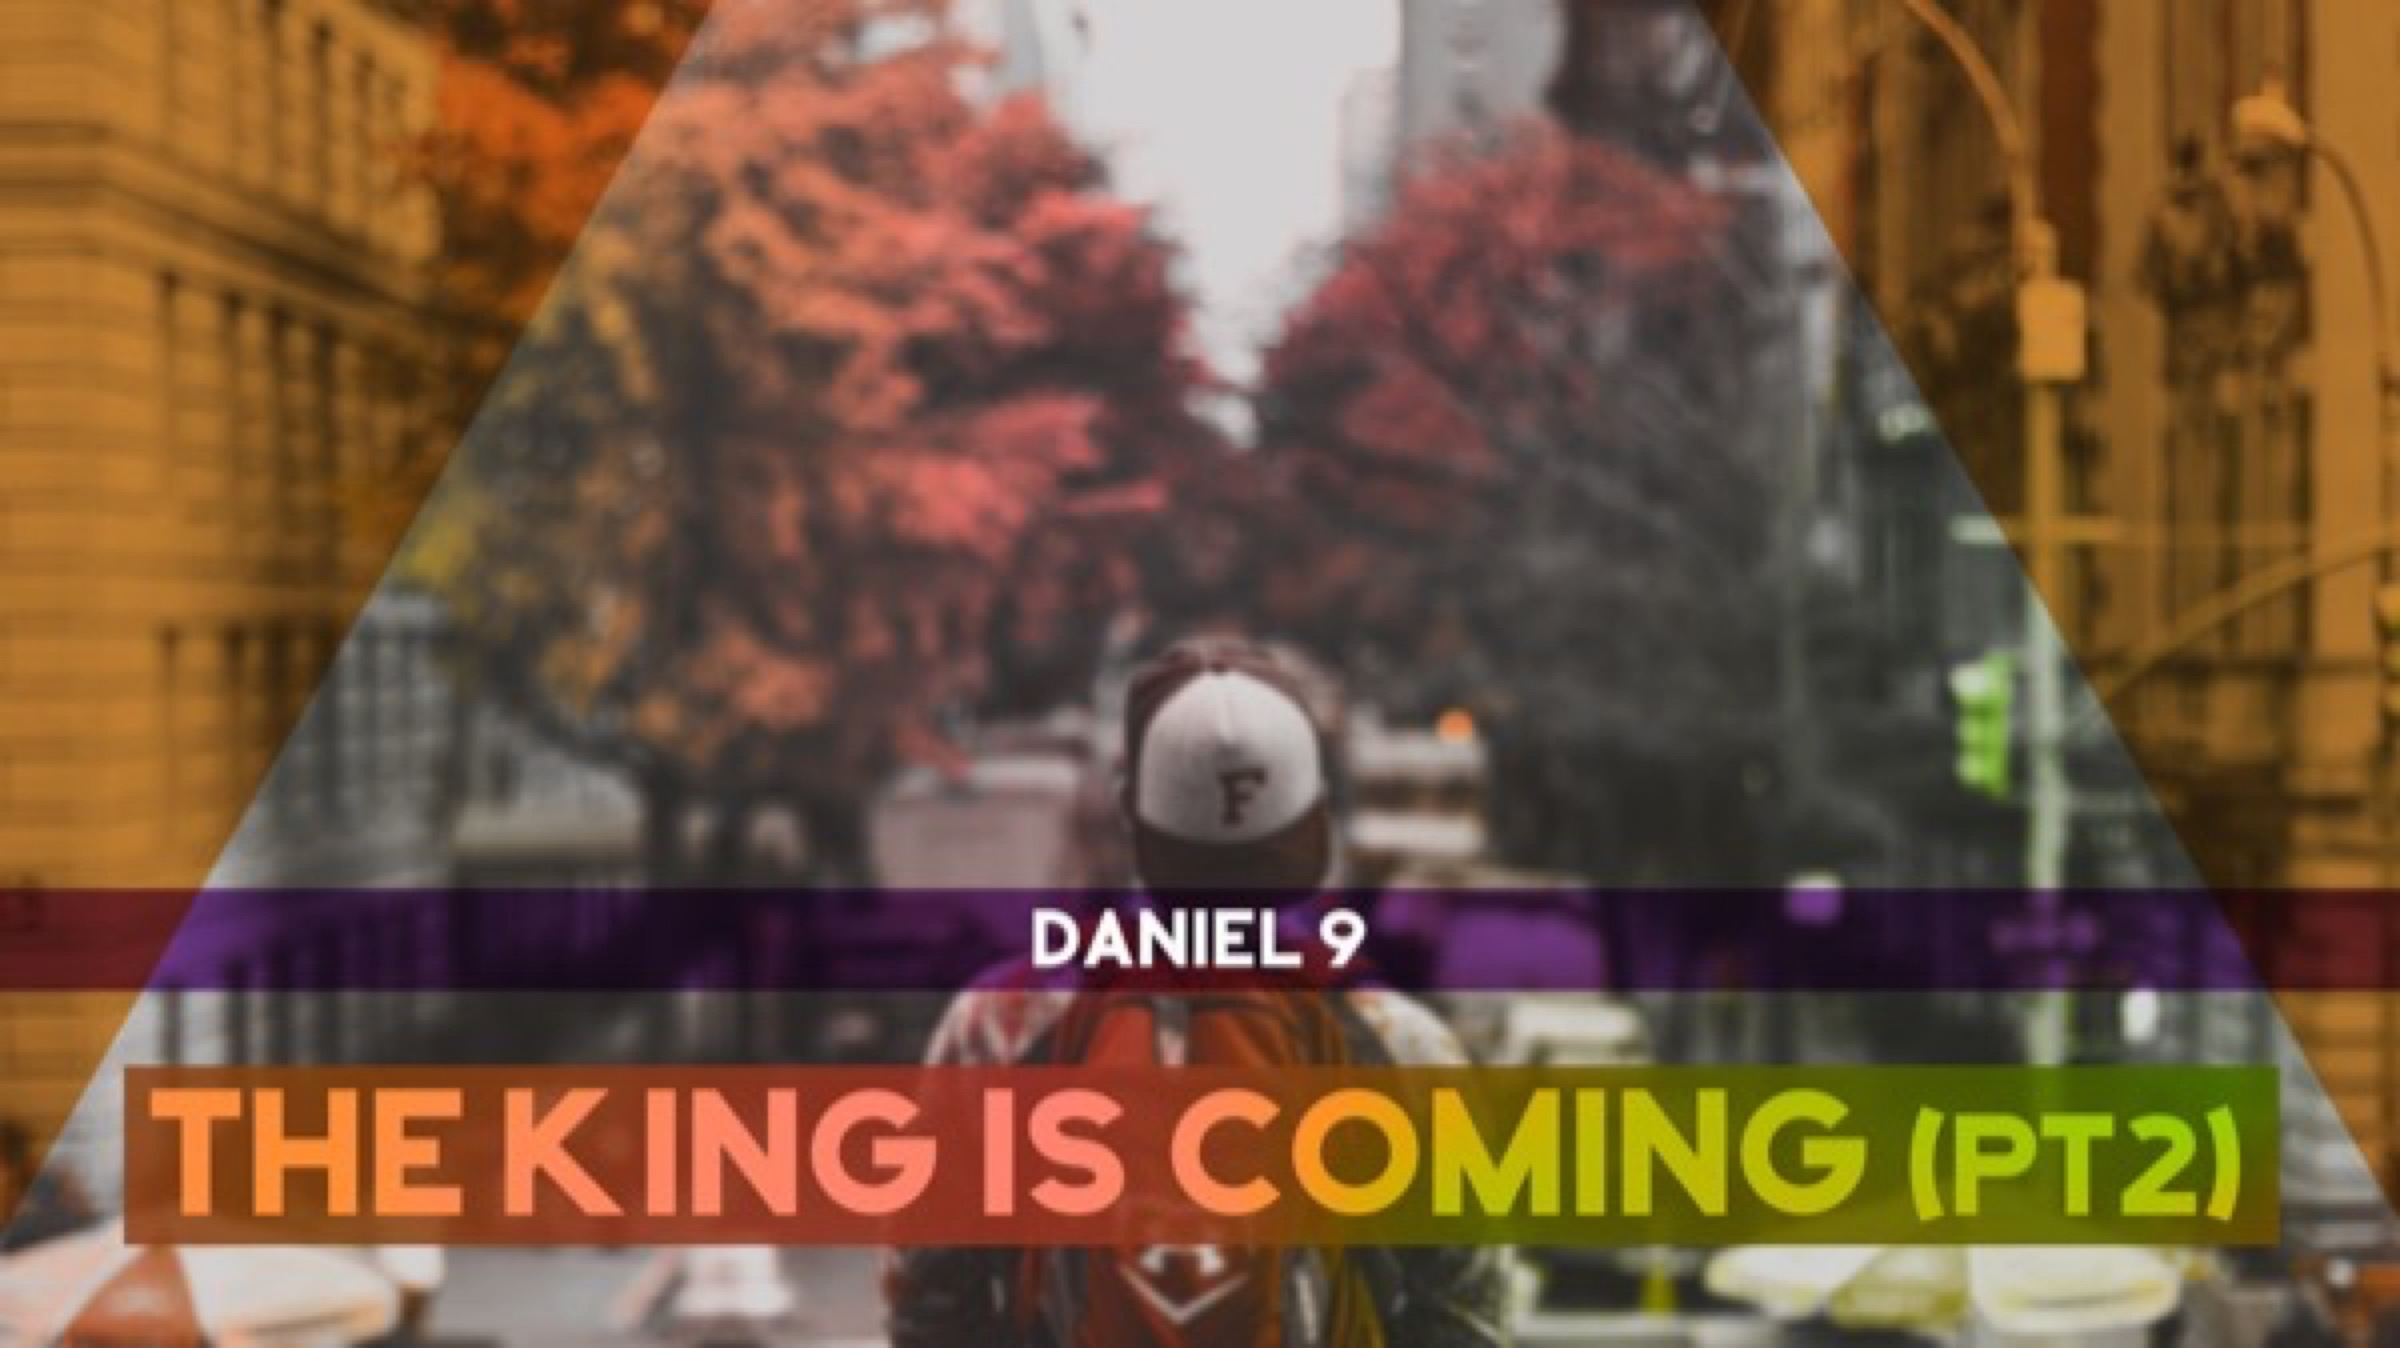 Daniel (the king is coming-pt2).jpg